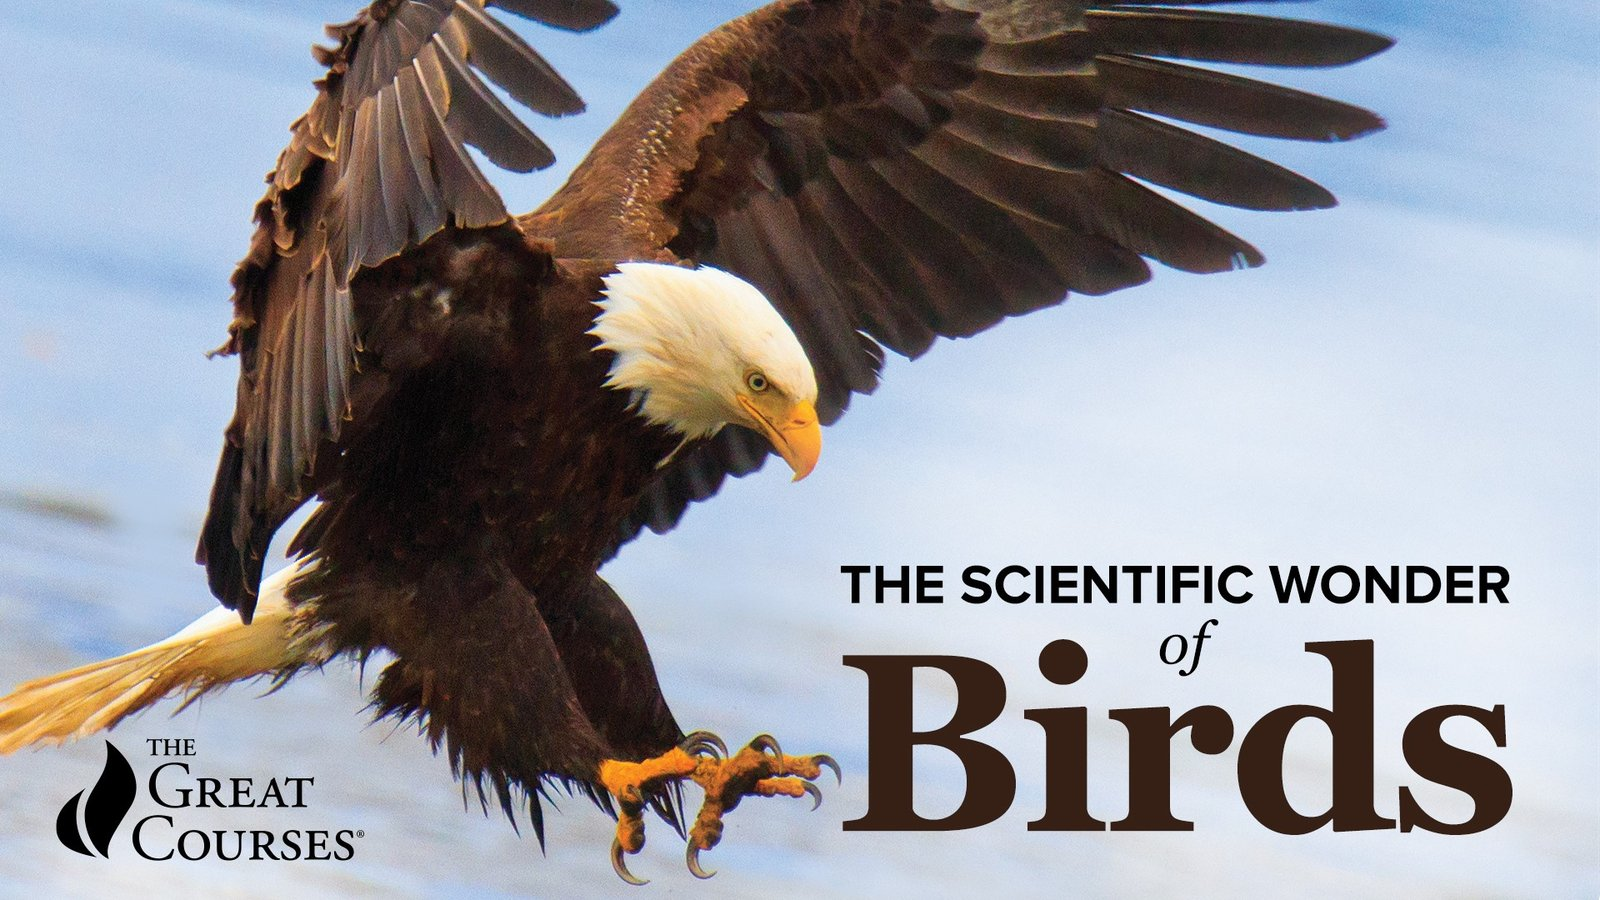 The Scientific Wonder of Birds